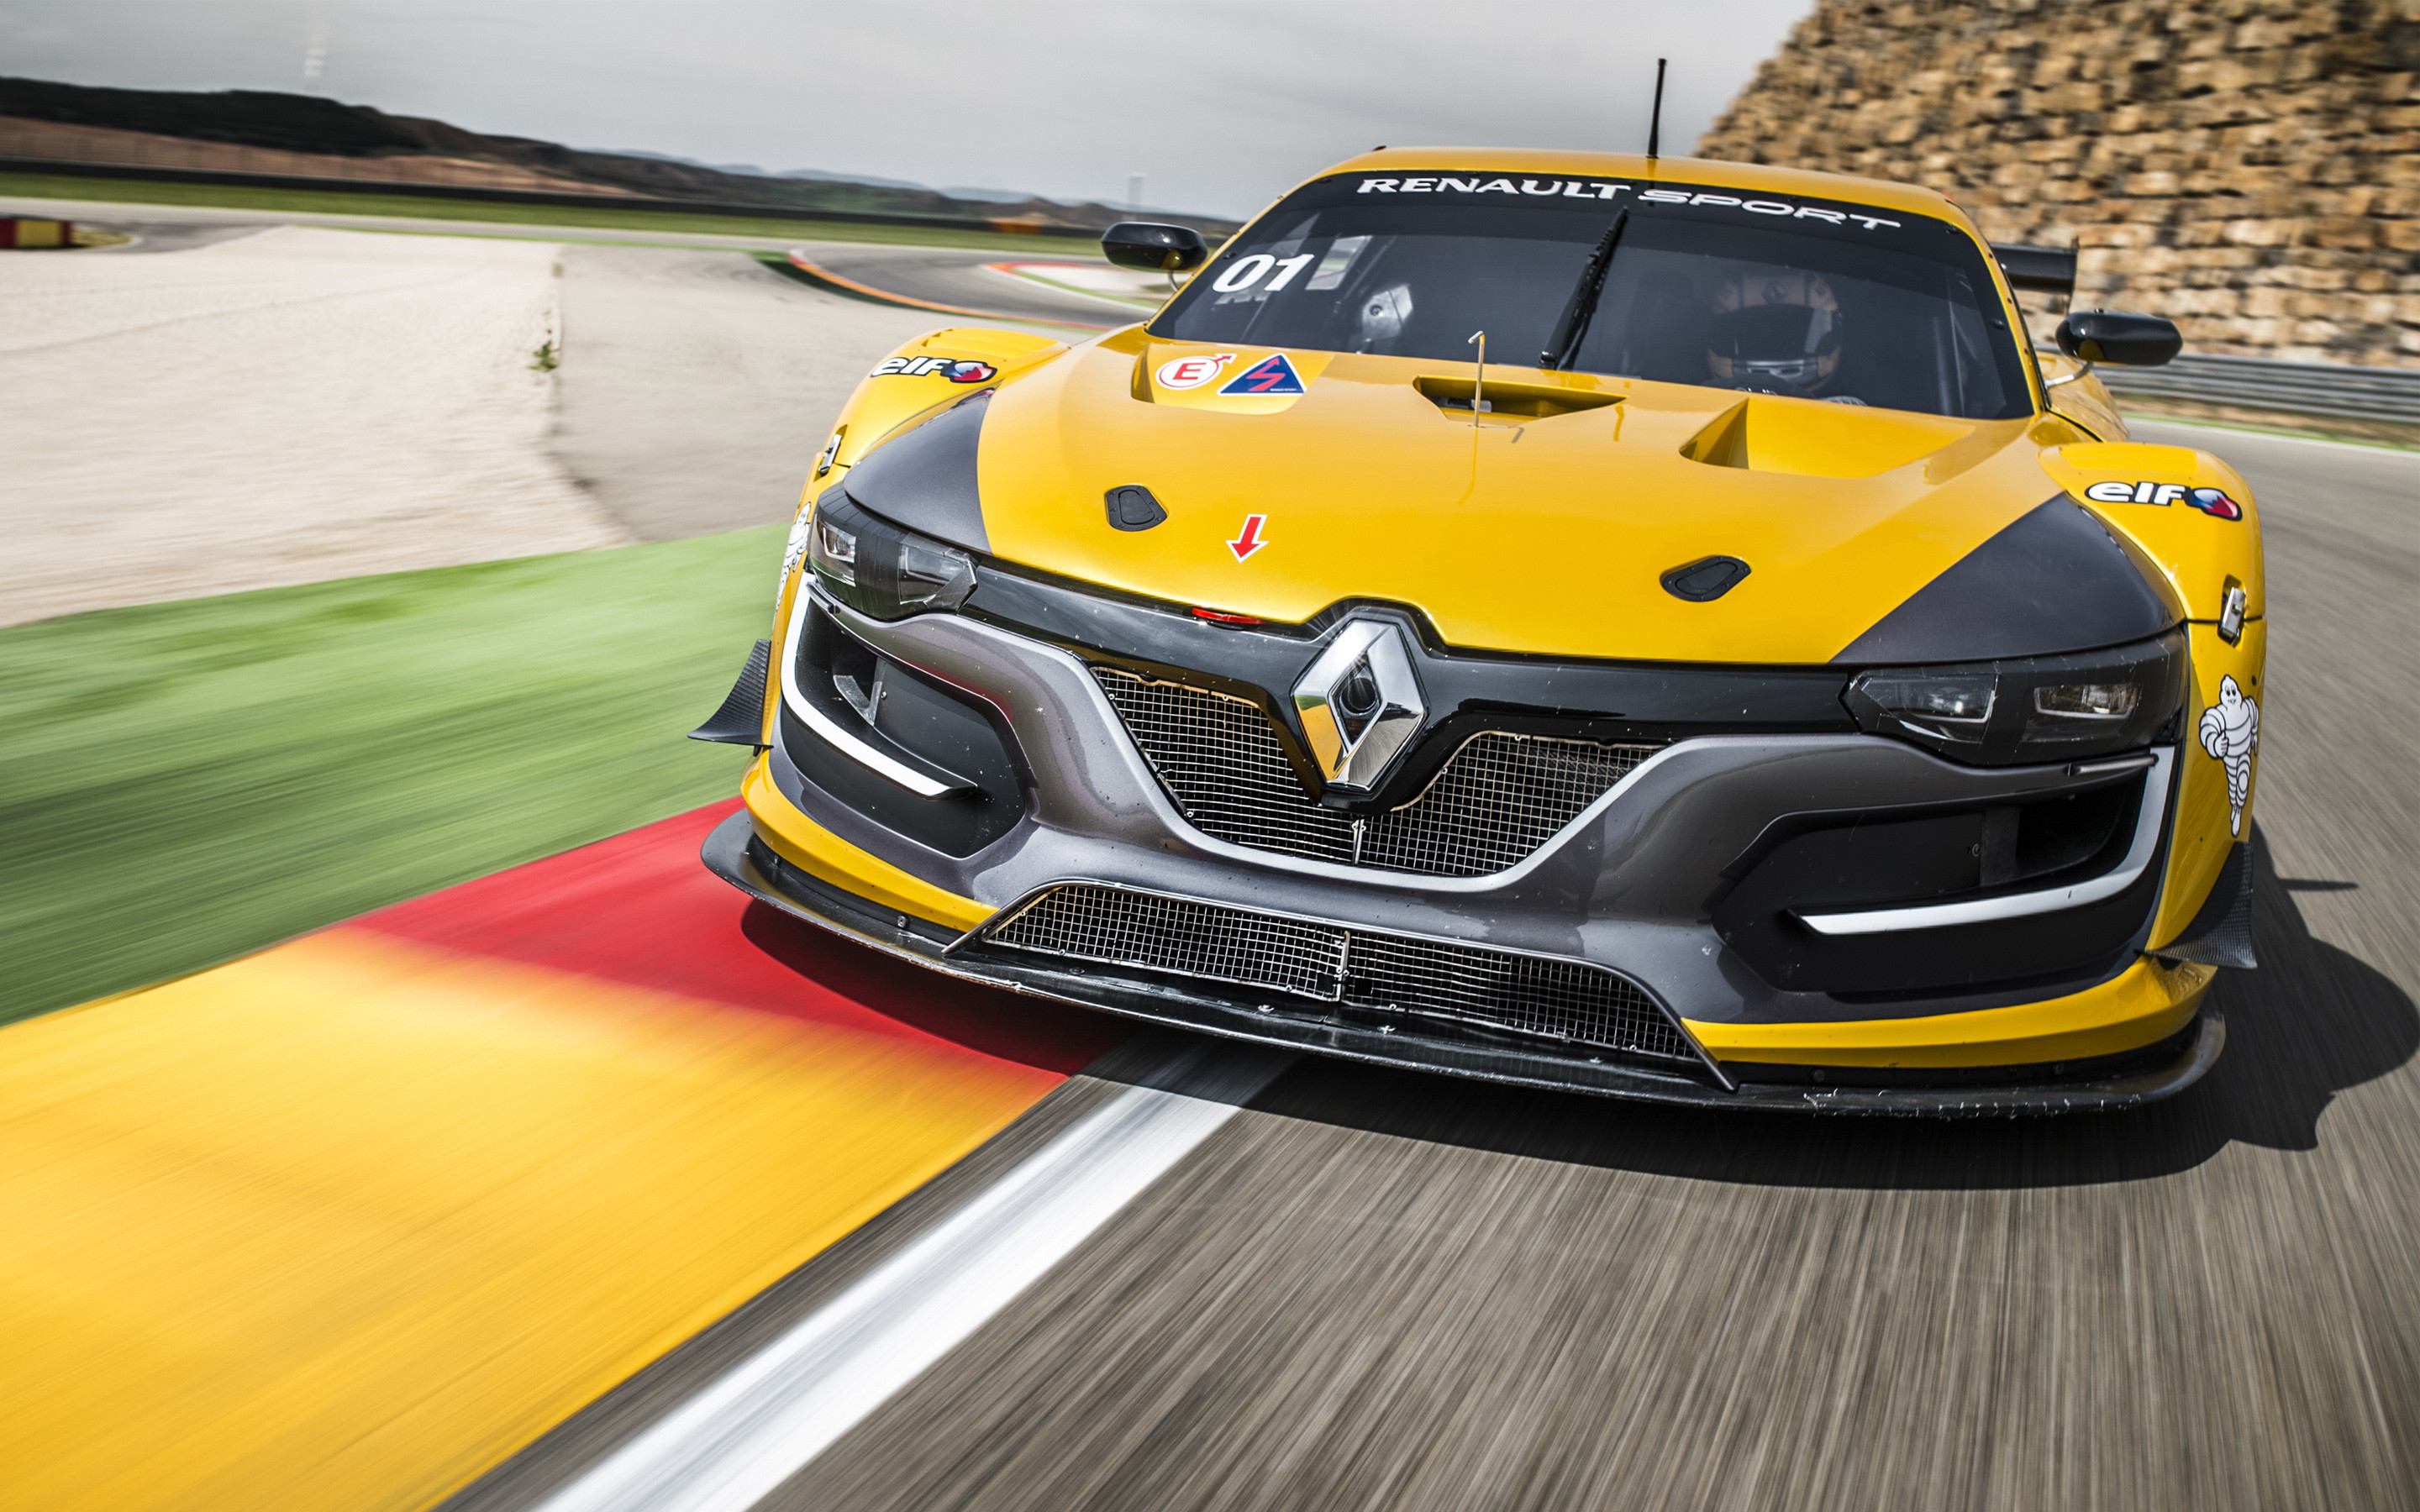 Res: 2880x1800, Tags: Sport racing Renault